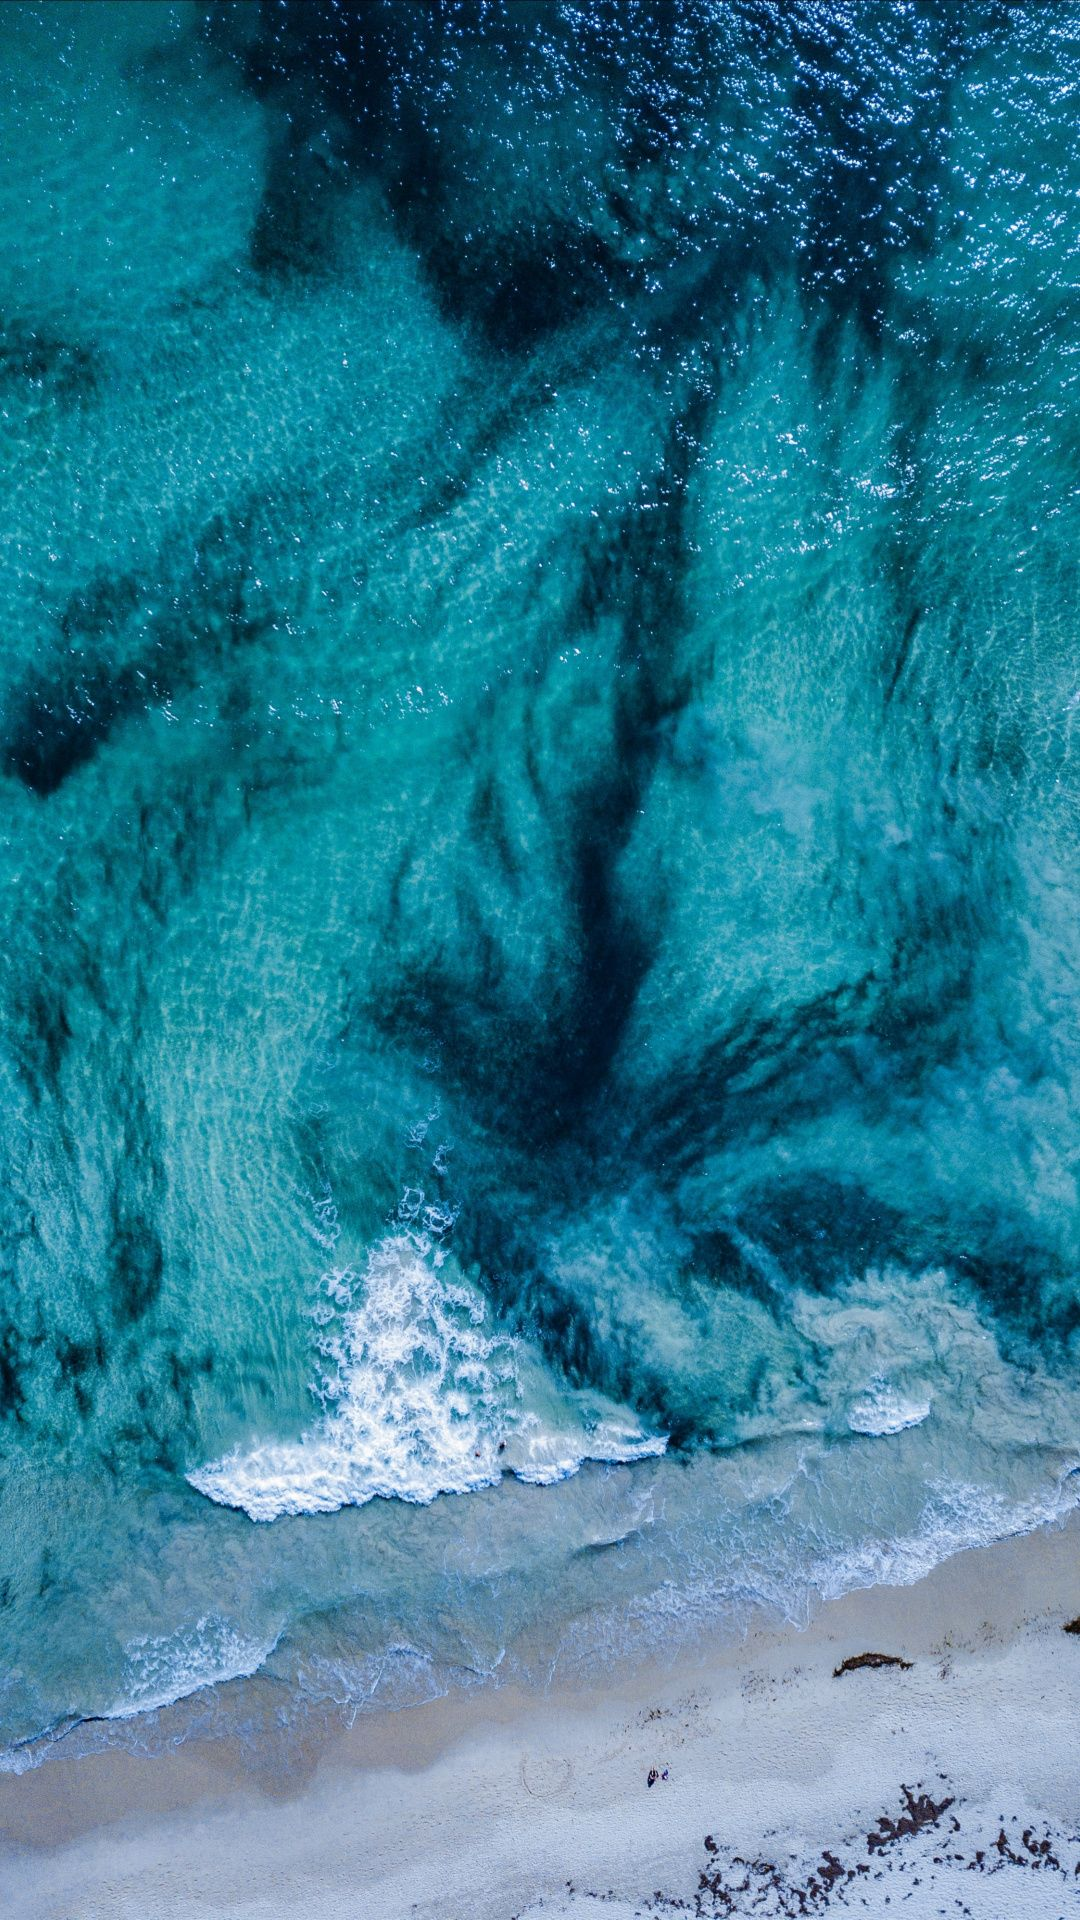 Downaload Blue Sea Waves Surf Aerial View Wallpaper For Screen 1080x1920 Samsung Galaxy S4 S5 Note Sony Xperia Z View Wallpaper Surfing Waves Sea Waves